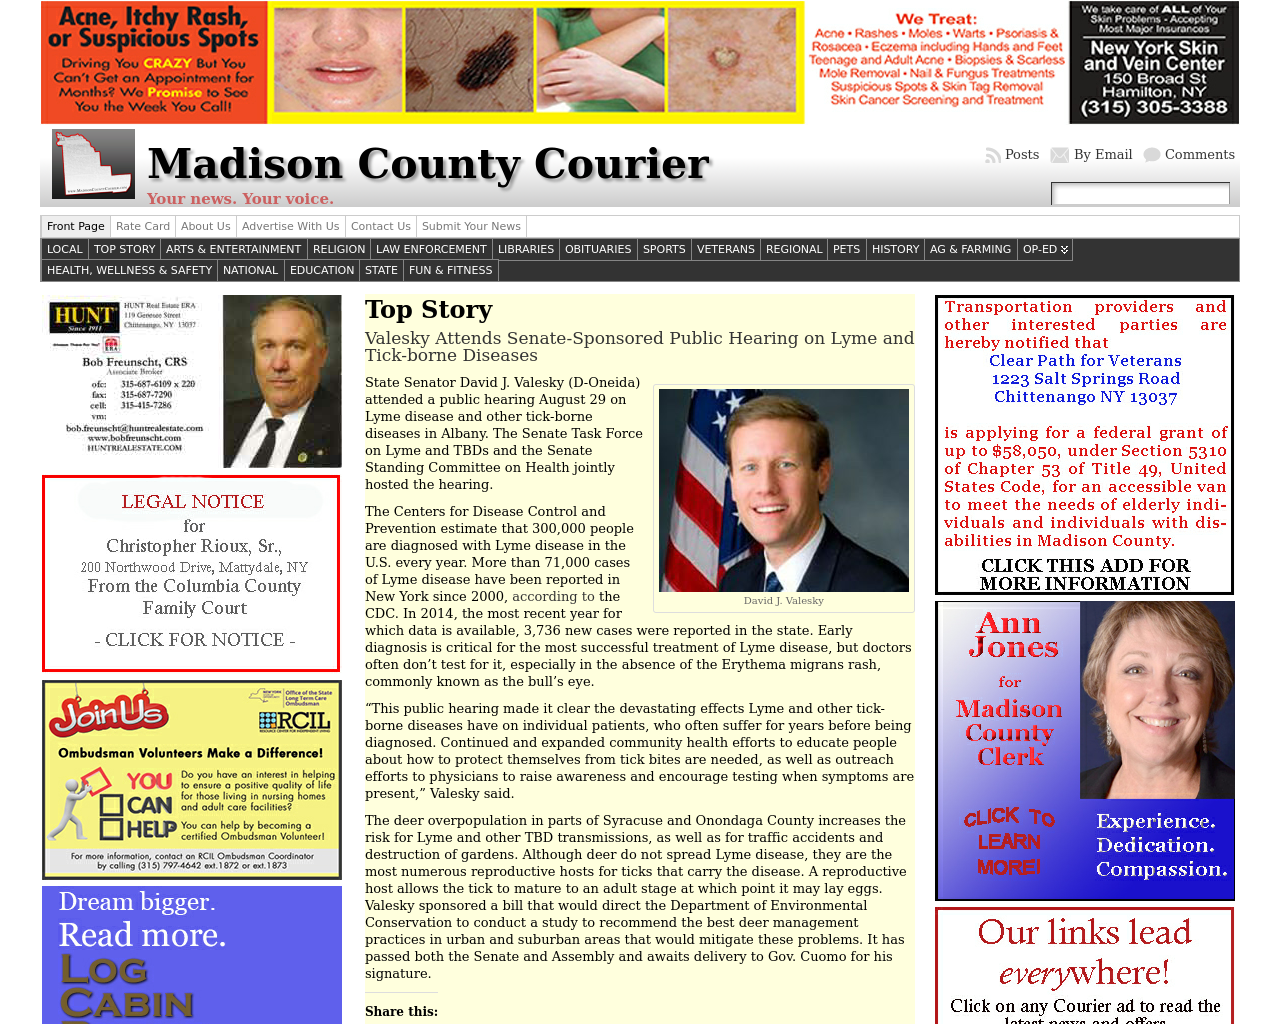 Madison-County-Courier-Advertising-Reviews-Pricing